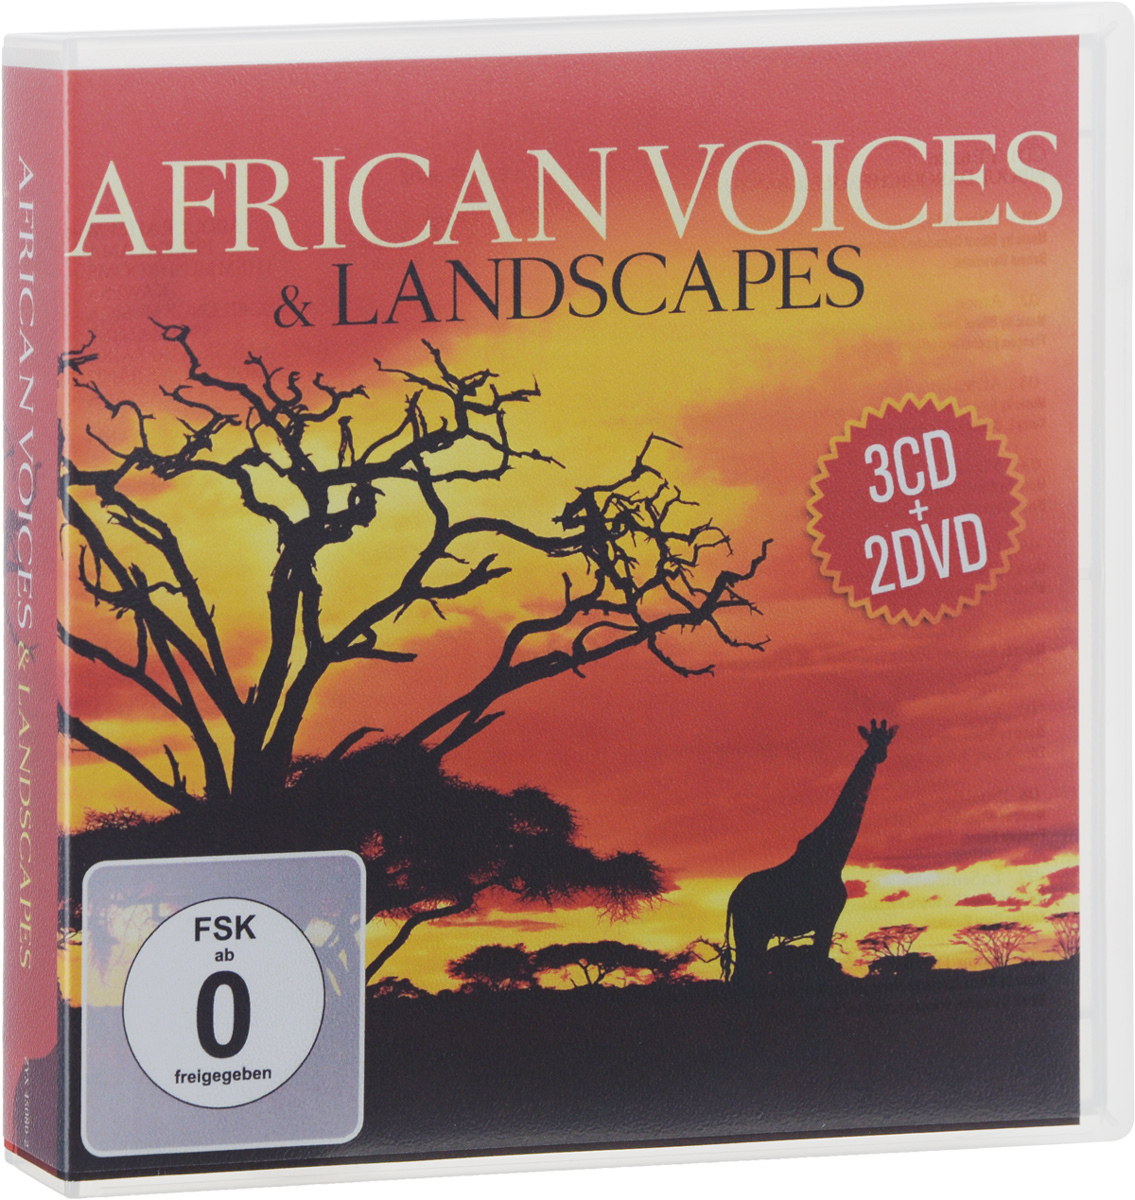 African Voices & Landscapes (3 CD + 2 DVD)